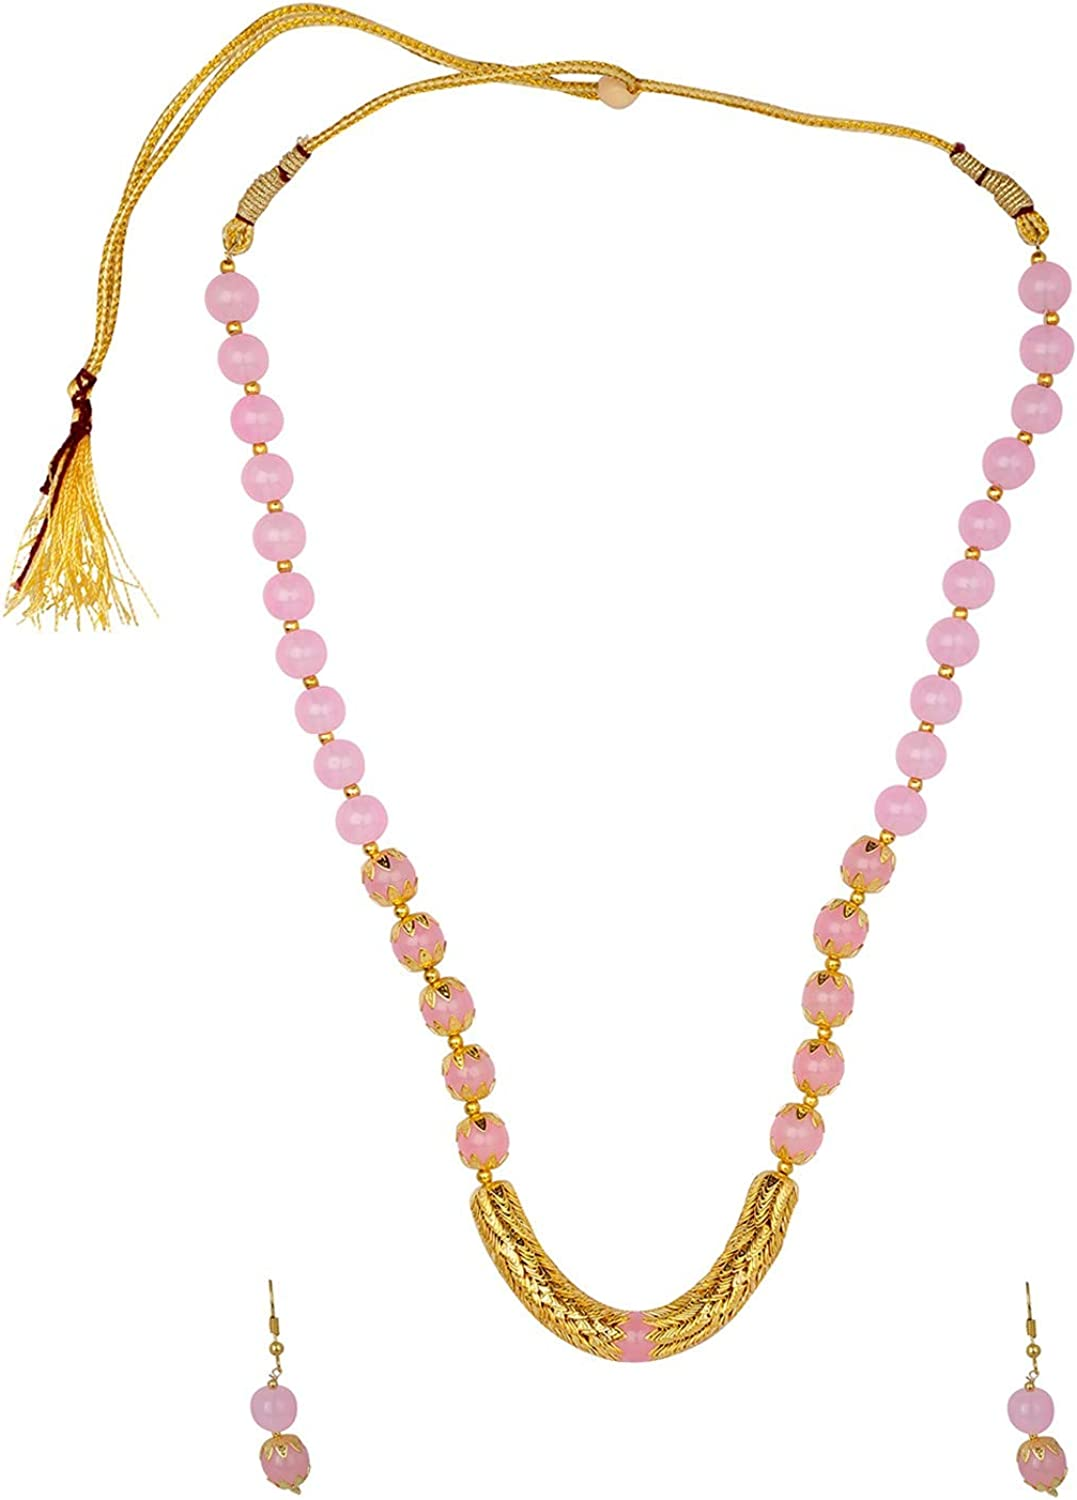 Efulgenz Boho Indian Bollywood Antique Gold Plated Faux Pearl Beaded Bridal Wedding Strand Statement Necklace Earrings Jewelry Set (Color Options)